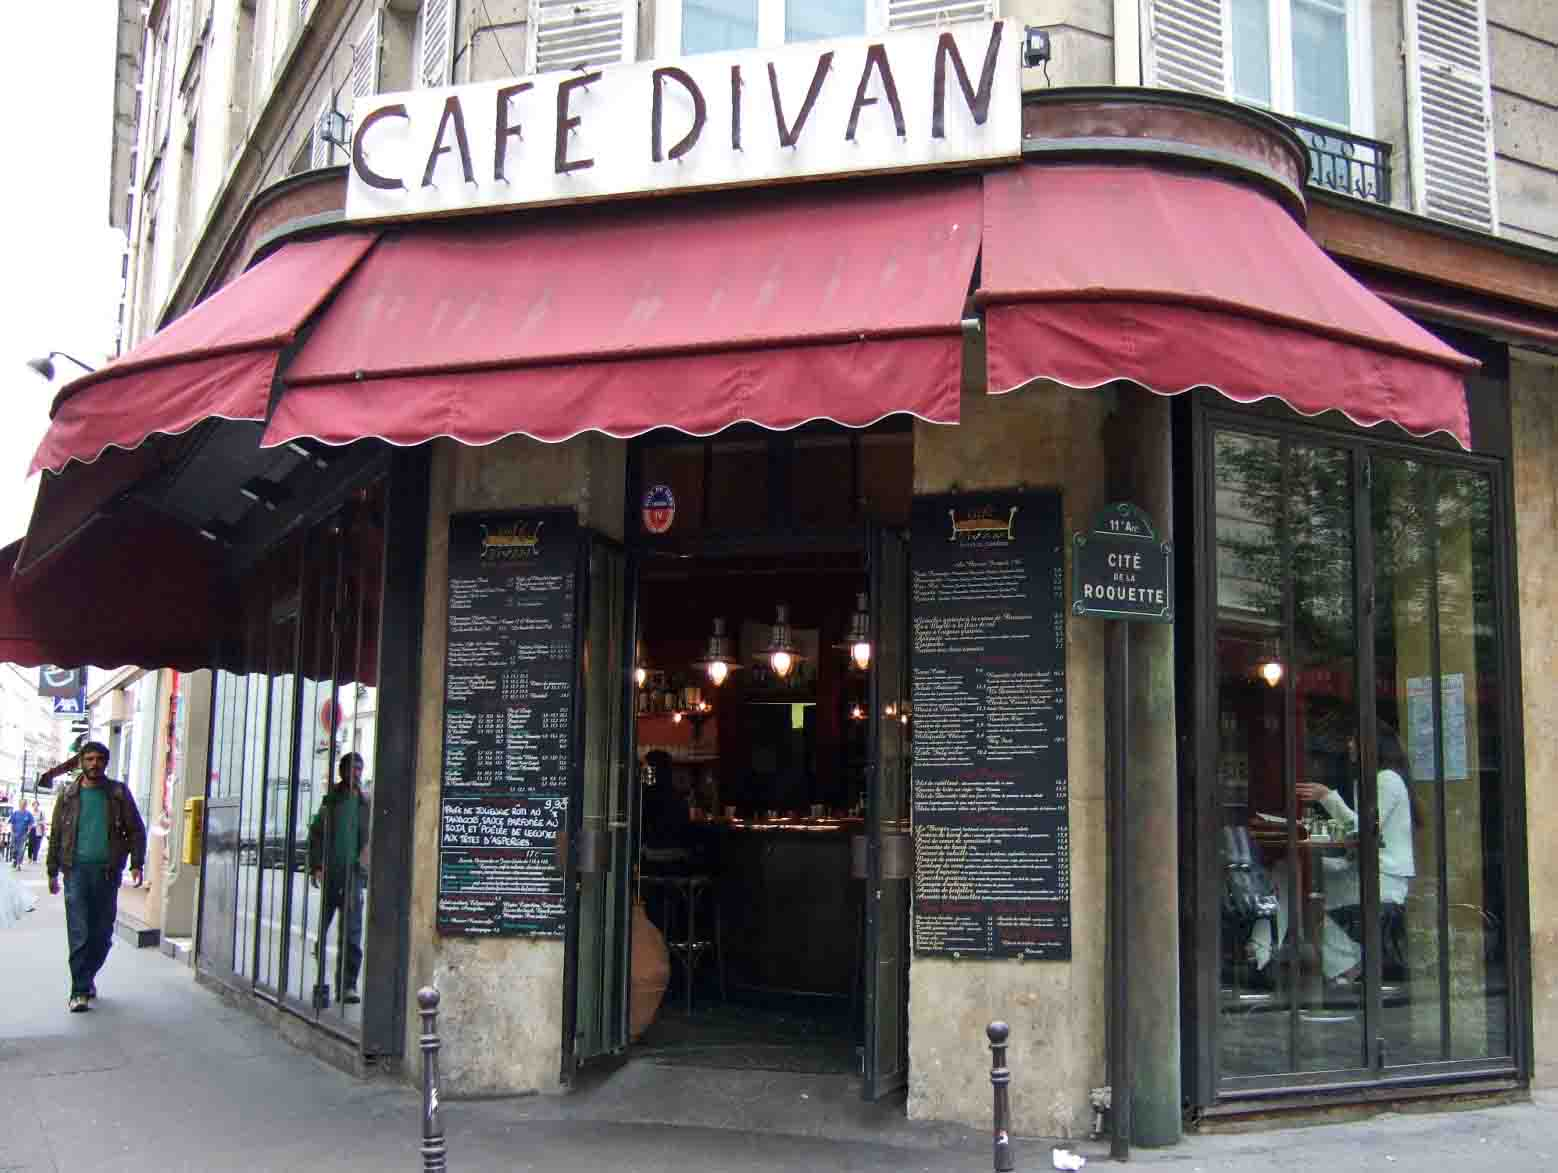 Cafe divan le pure cafe 11 pourquoi pas for Cafe divan 75011